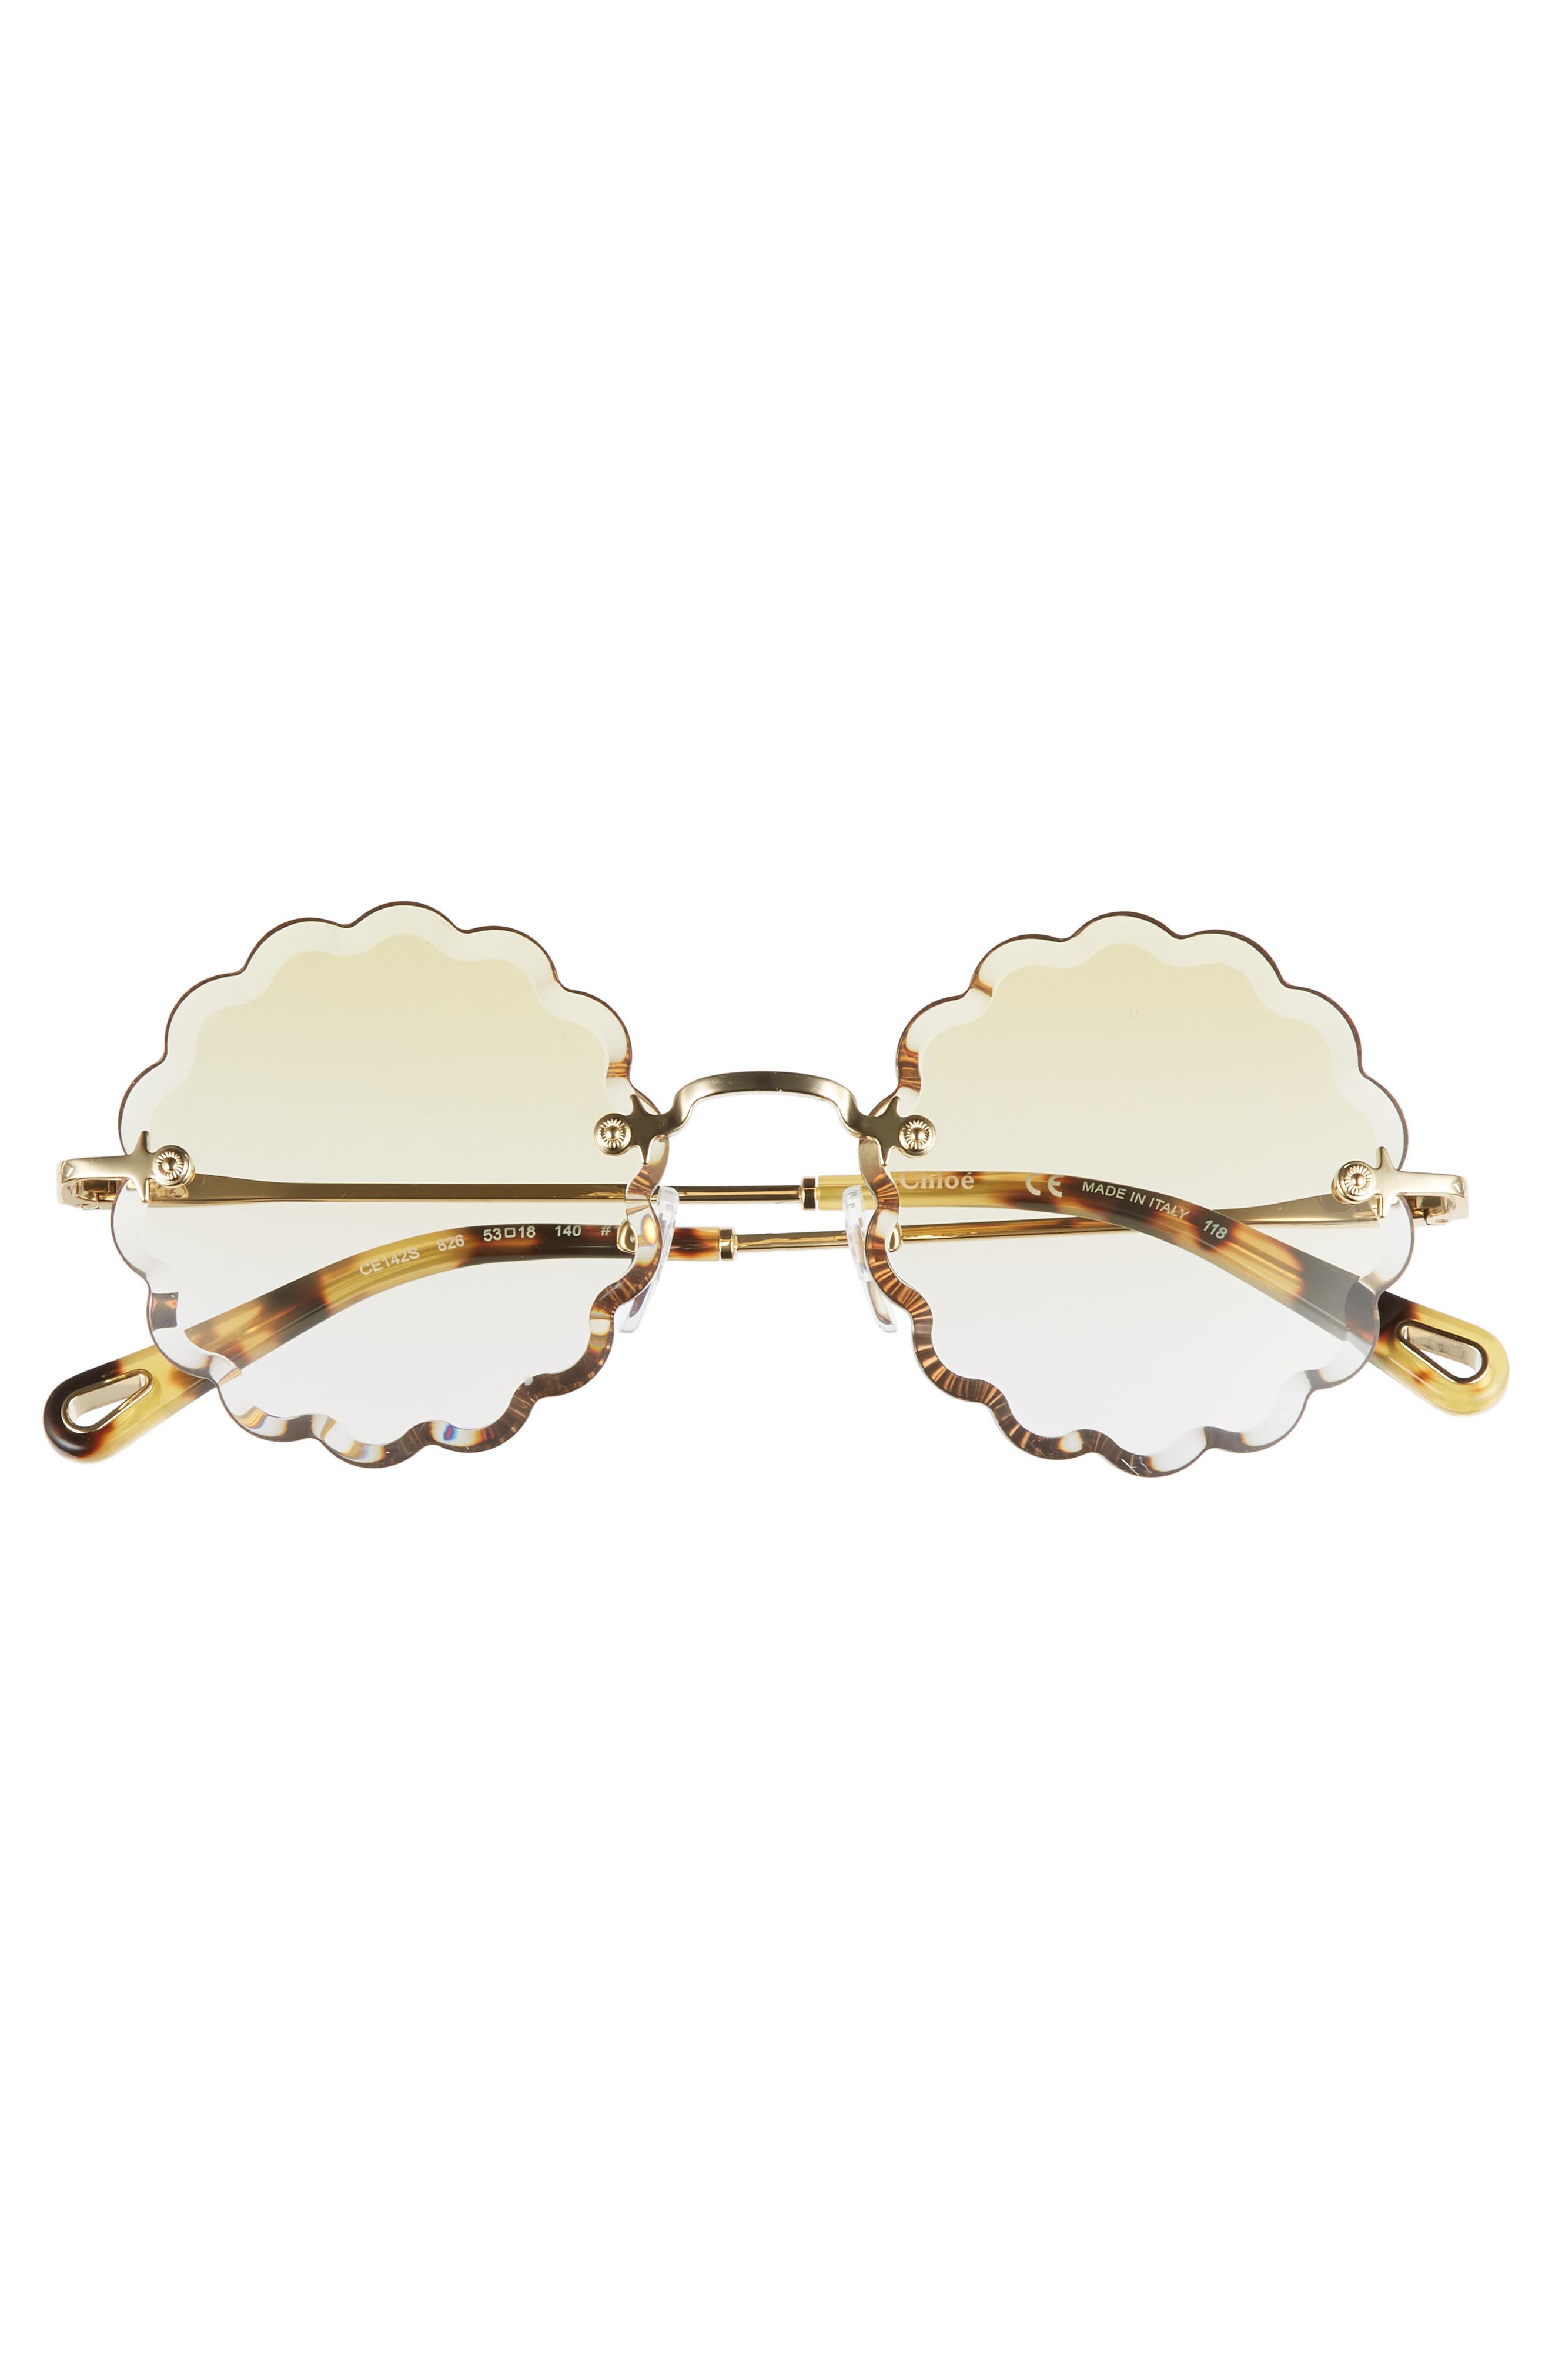 CHLOÉ, Rosie 53mm Scalloped Sunglasses, Alternate thumbnail 3, color, GOLD/ GRADIENT YELLOW